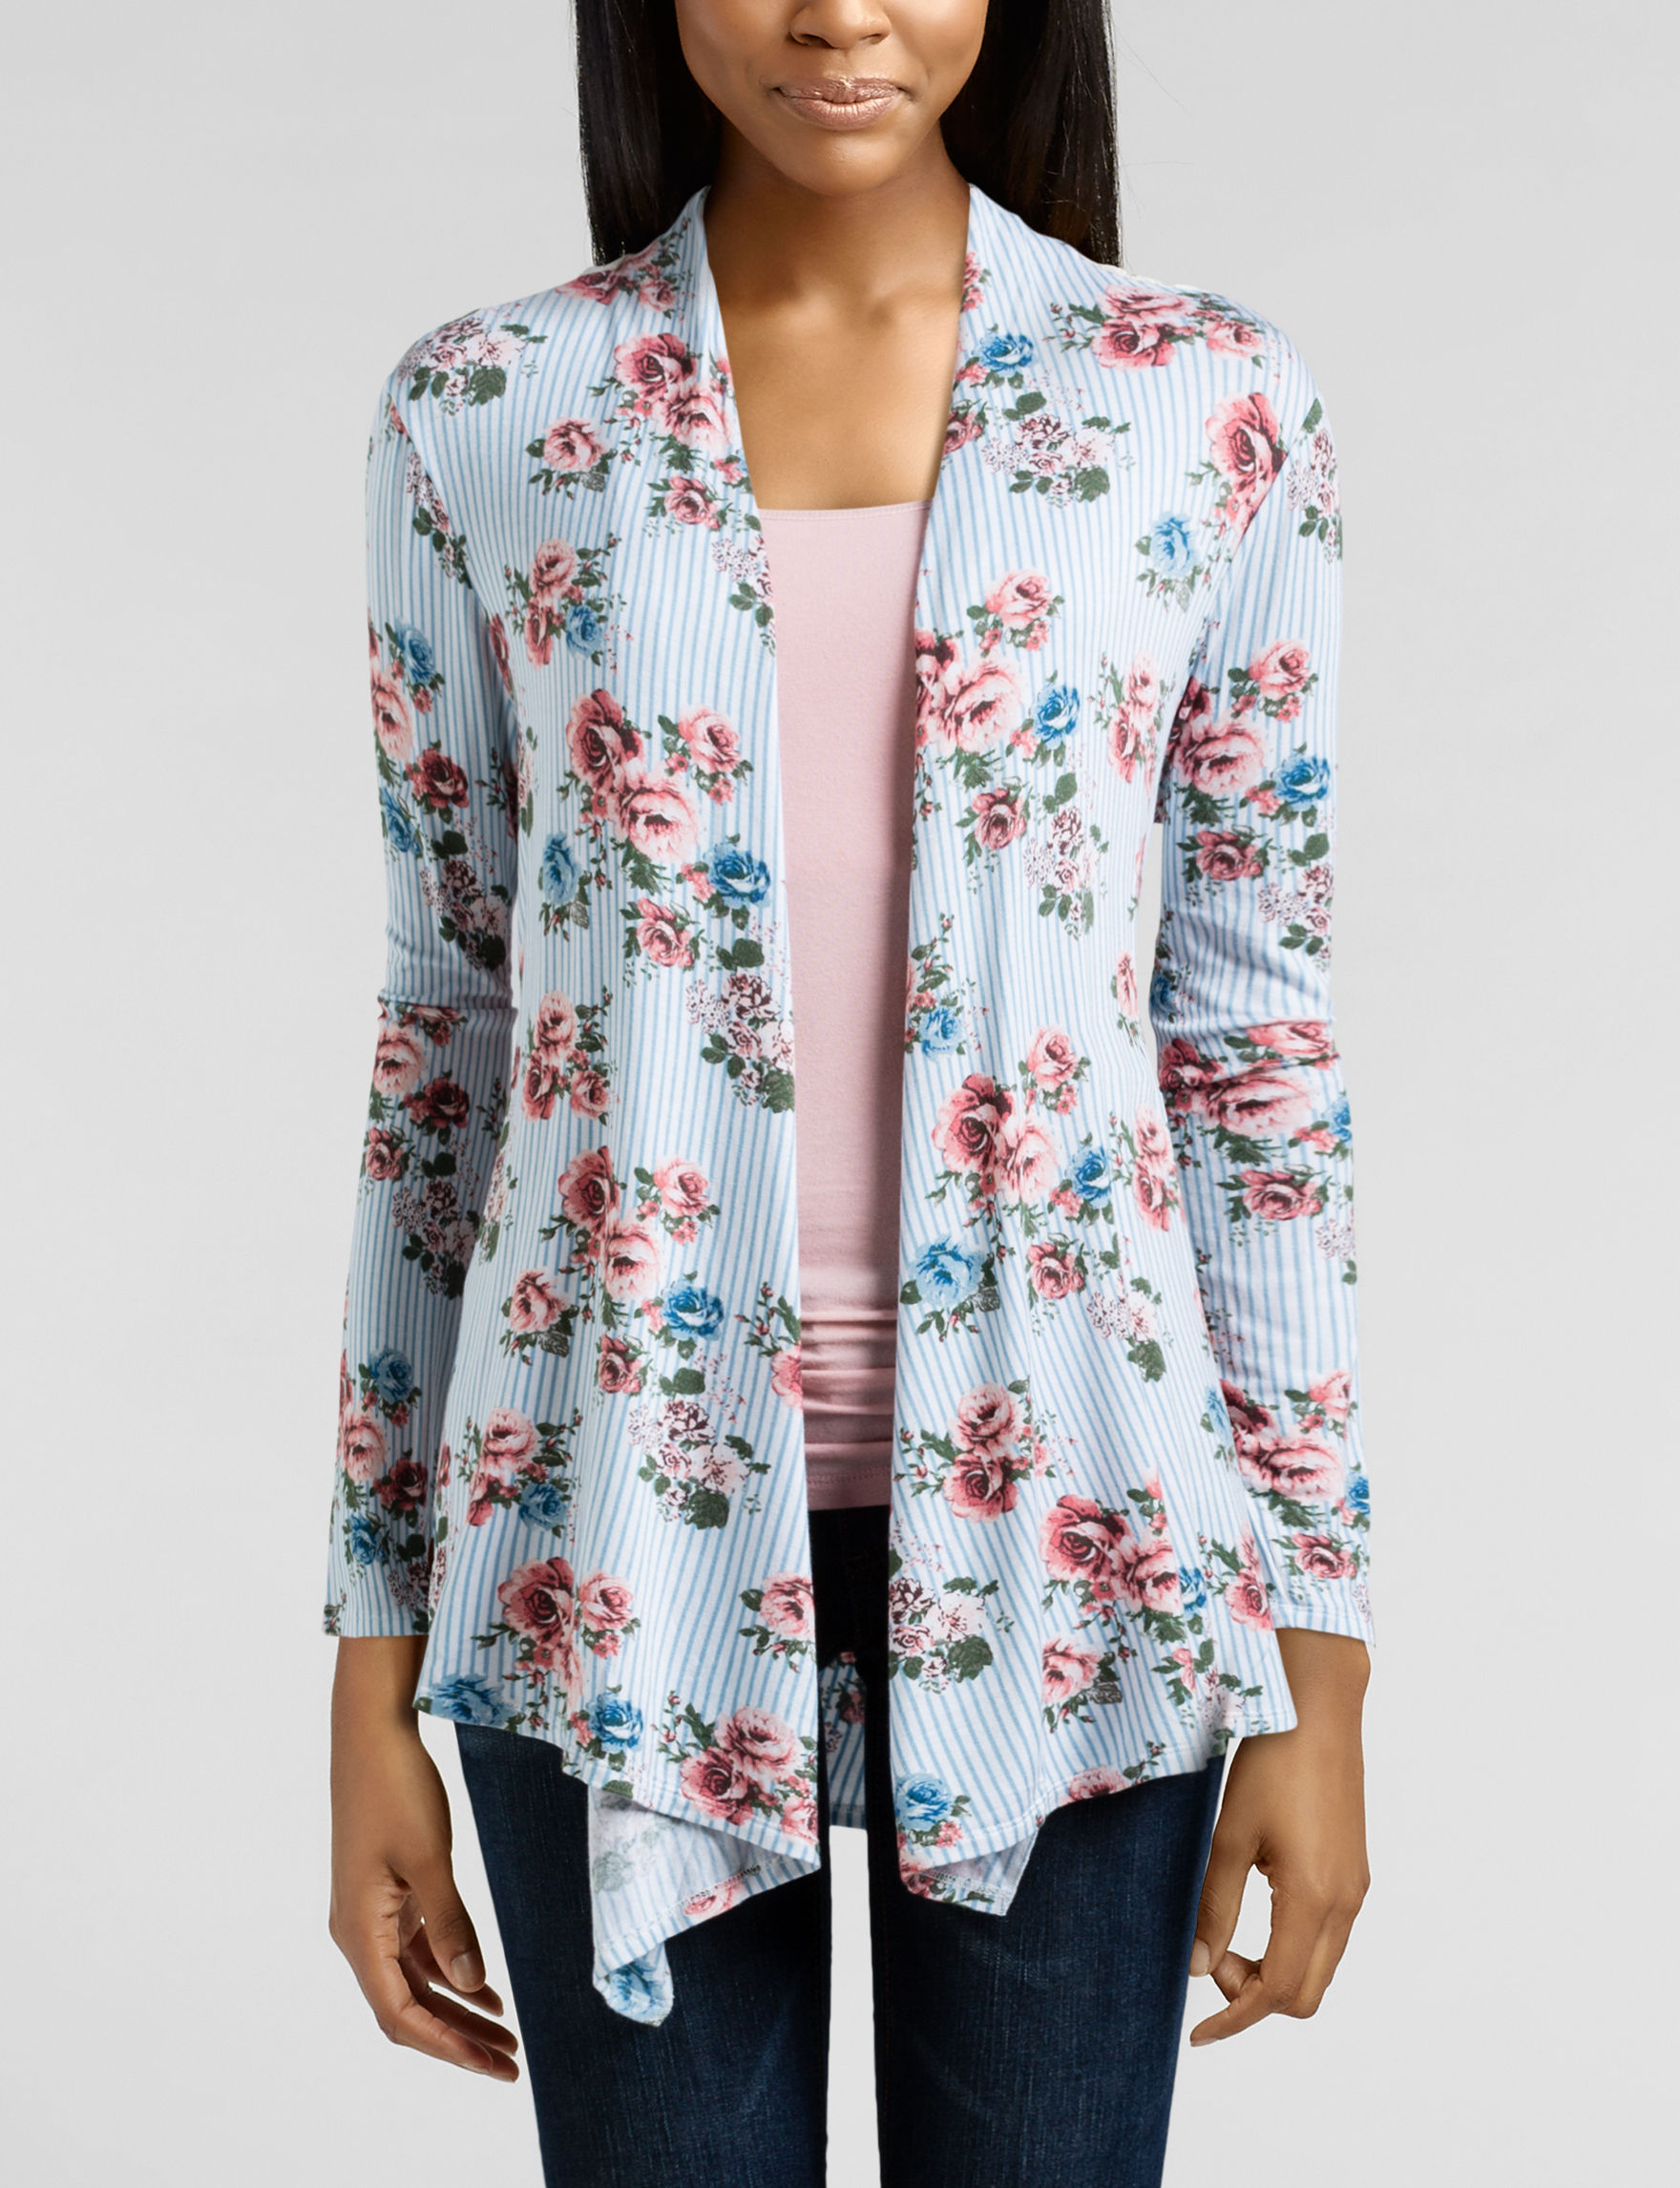 Liberty Love Blue / White Cardigans